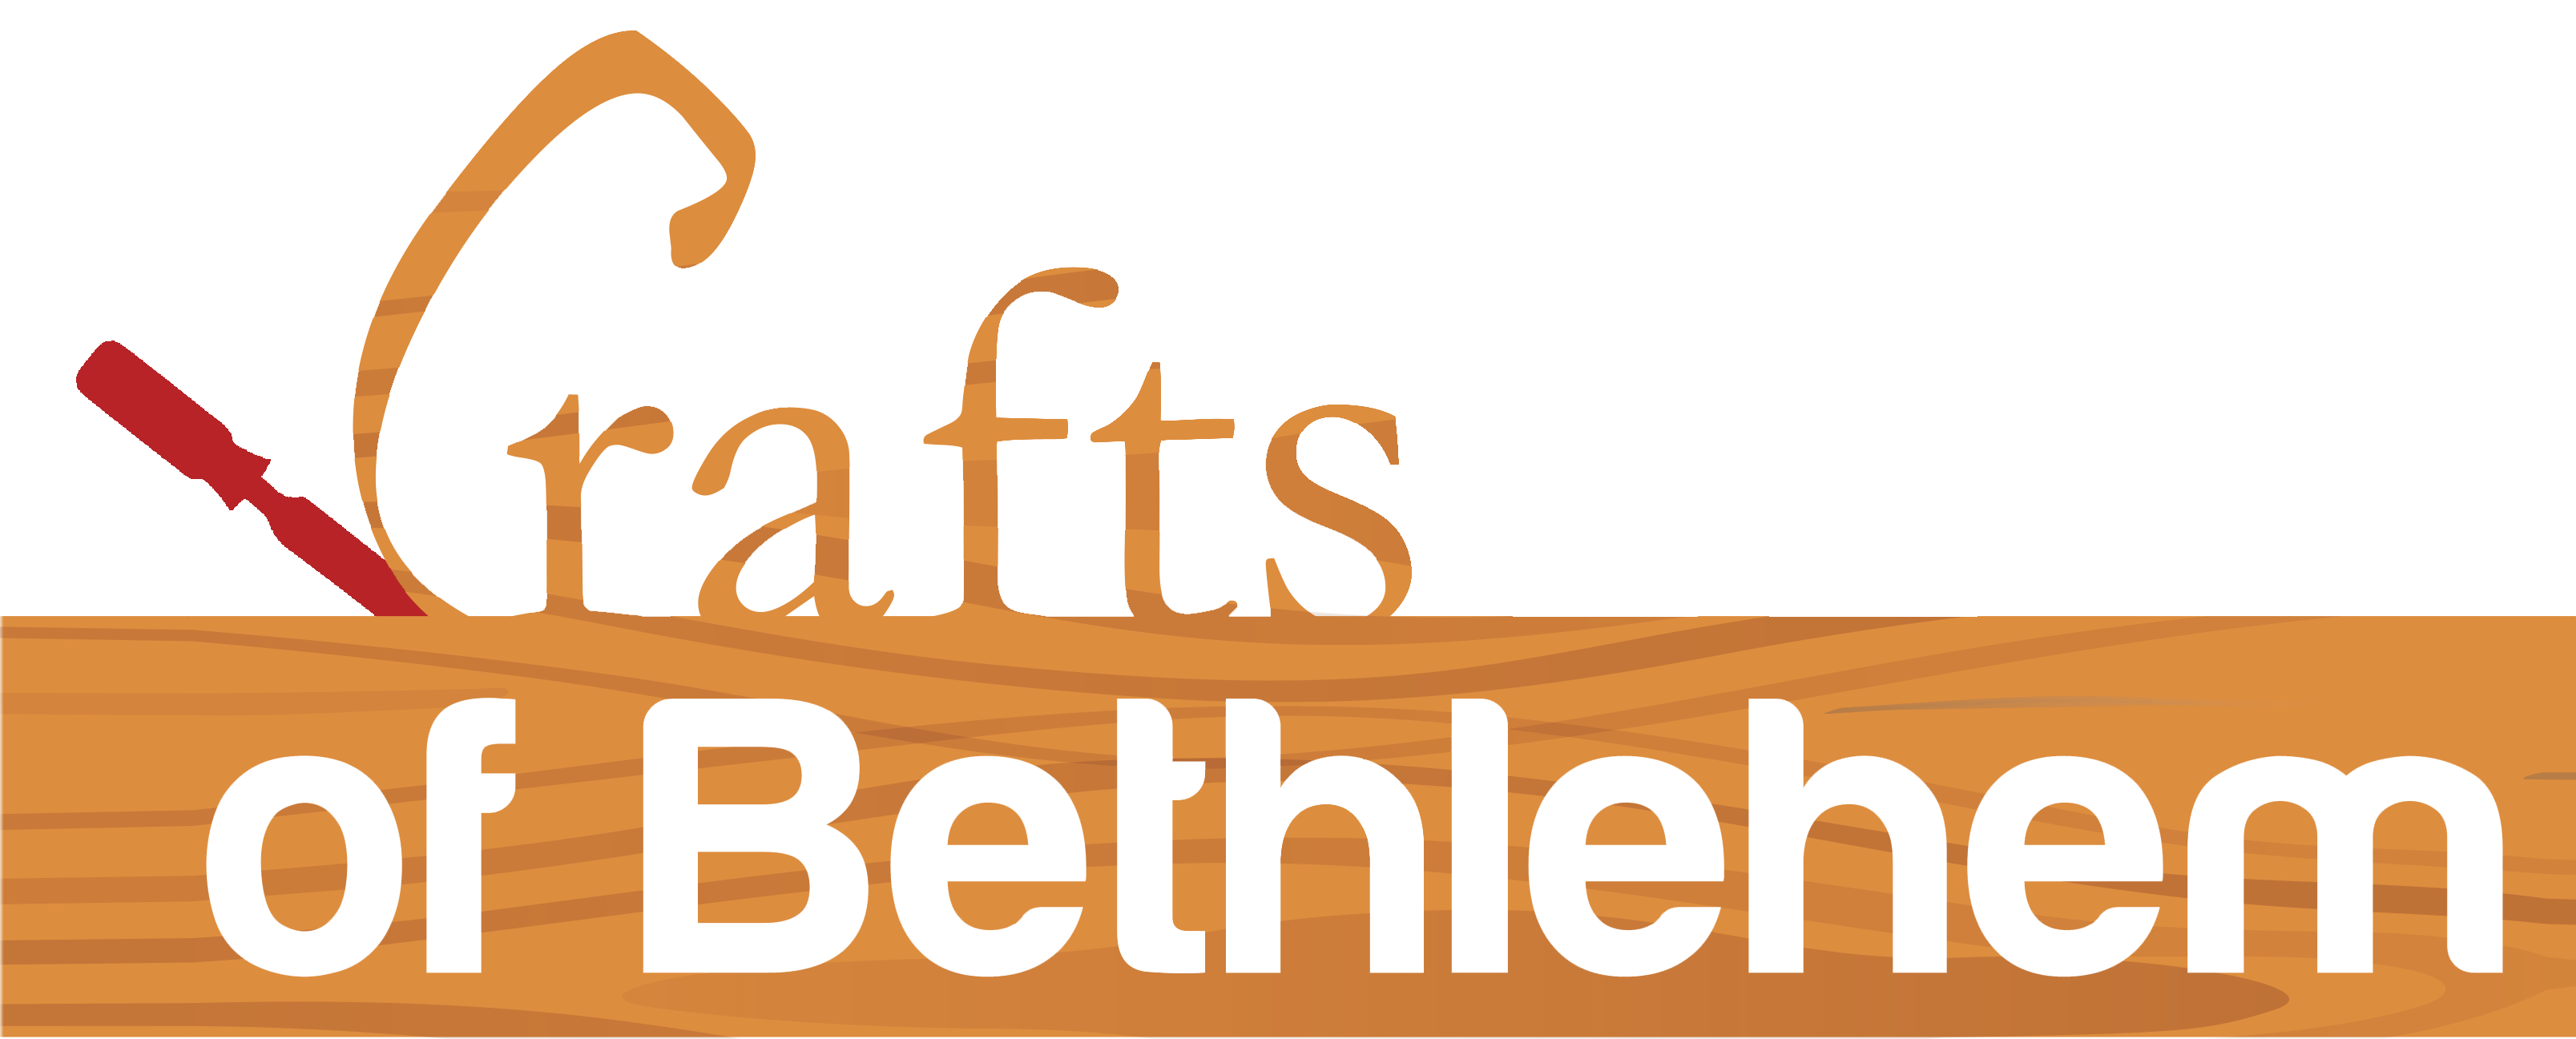 Crafts of Bethlehem